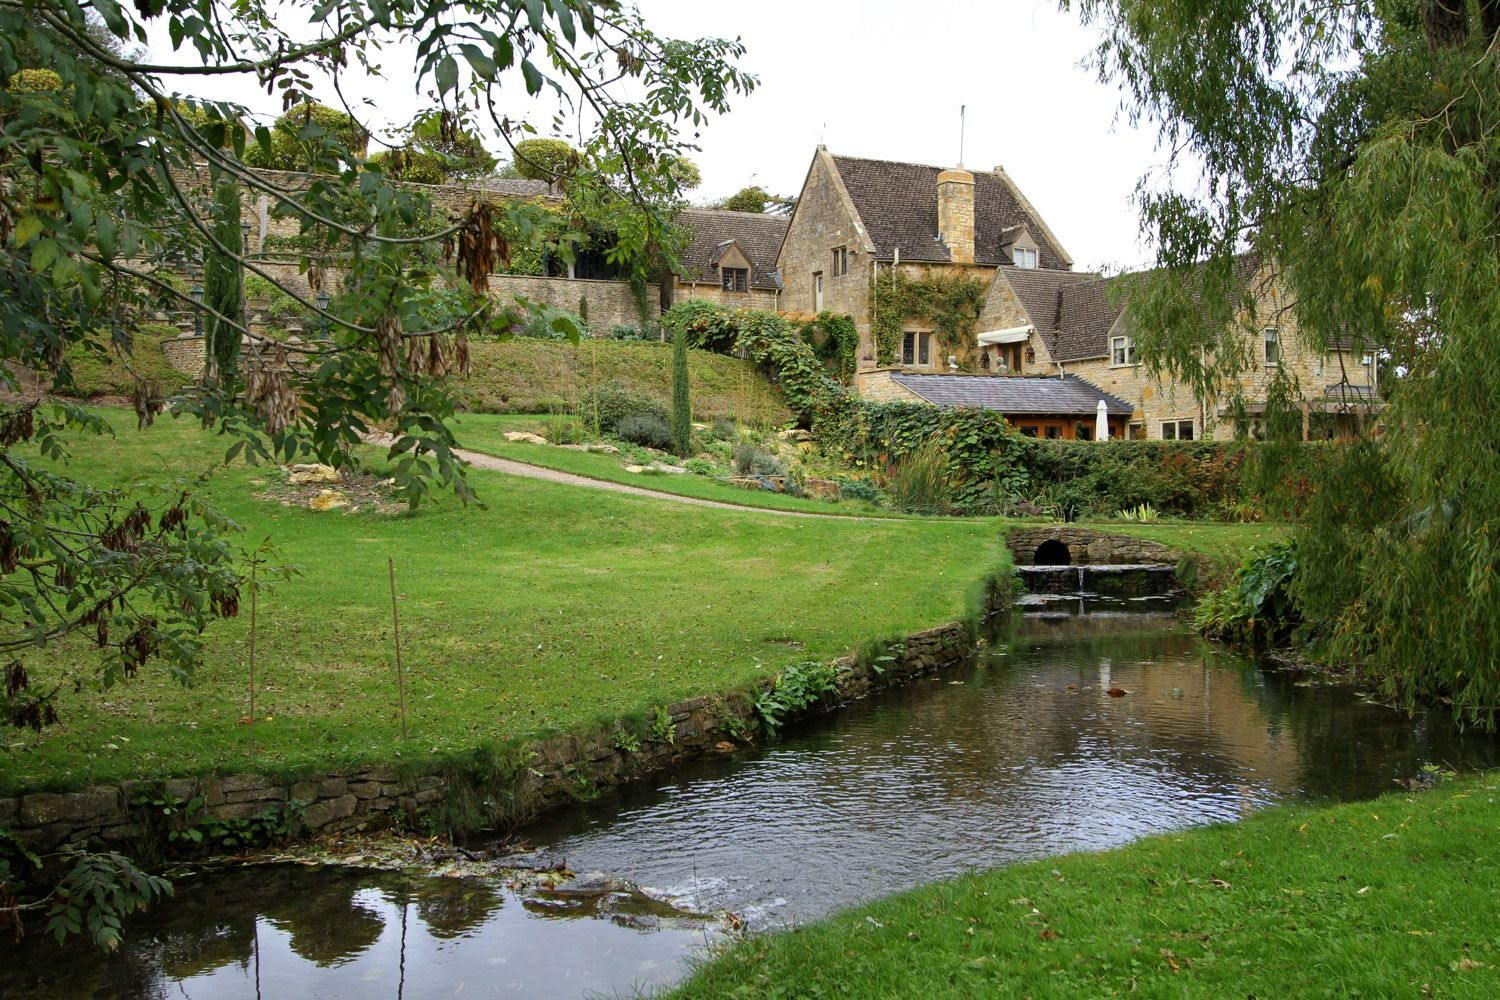 Self-Catering in Moreton-in-Marsh holidays at Cool Places